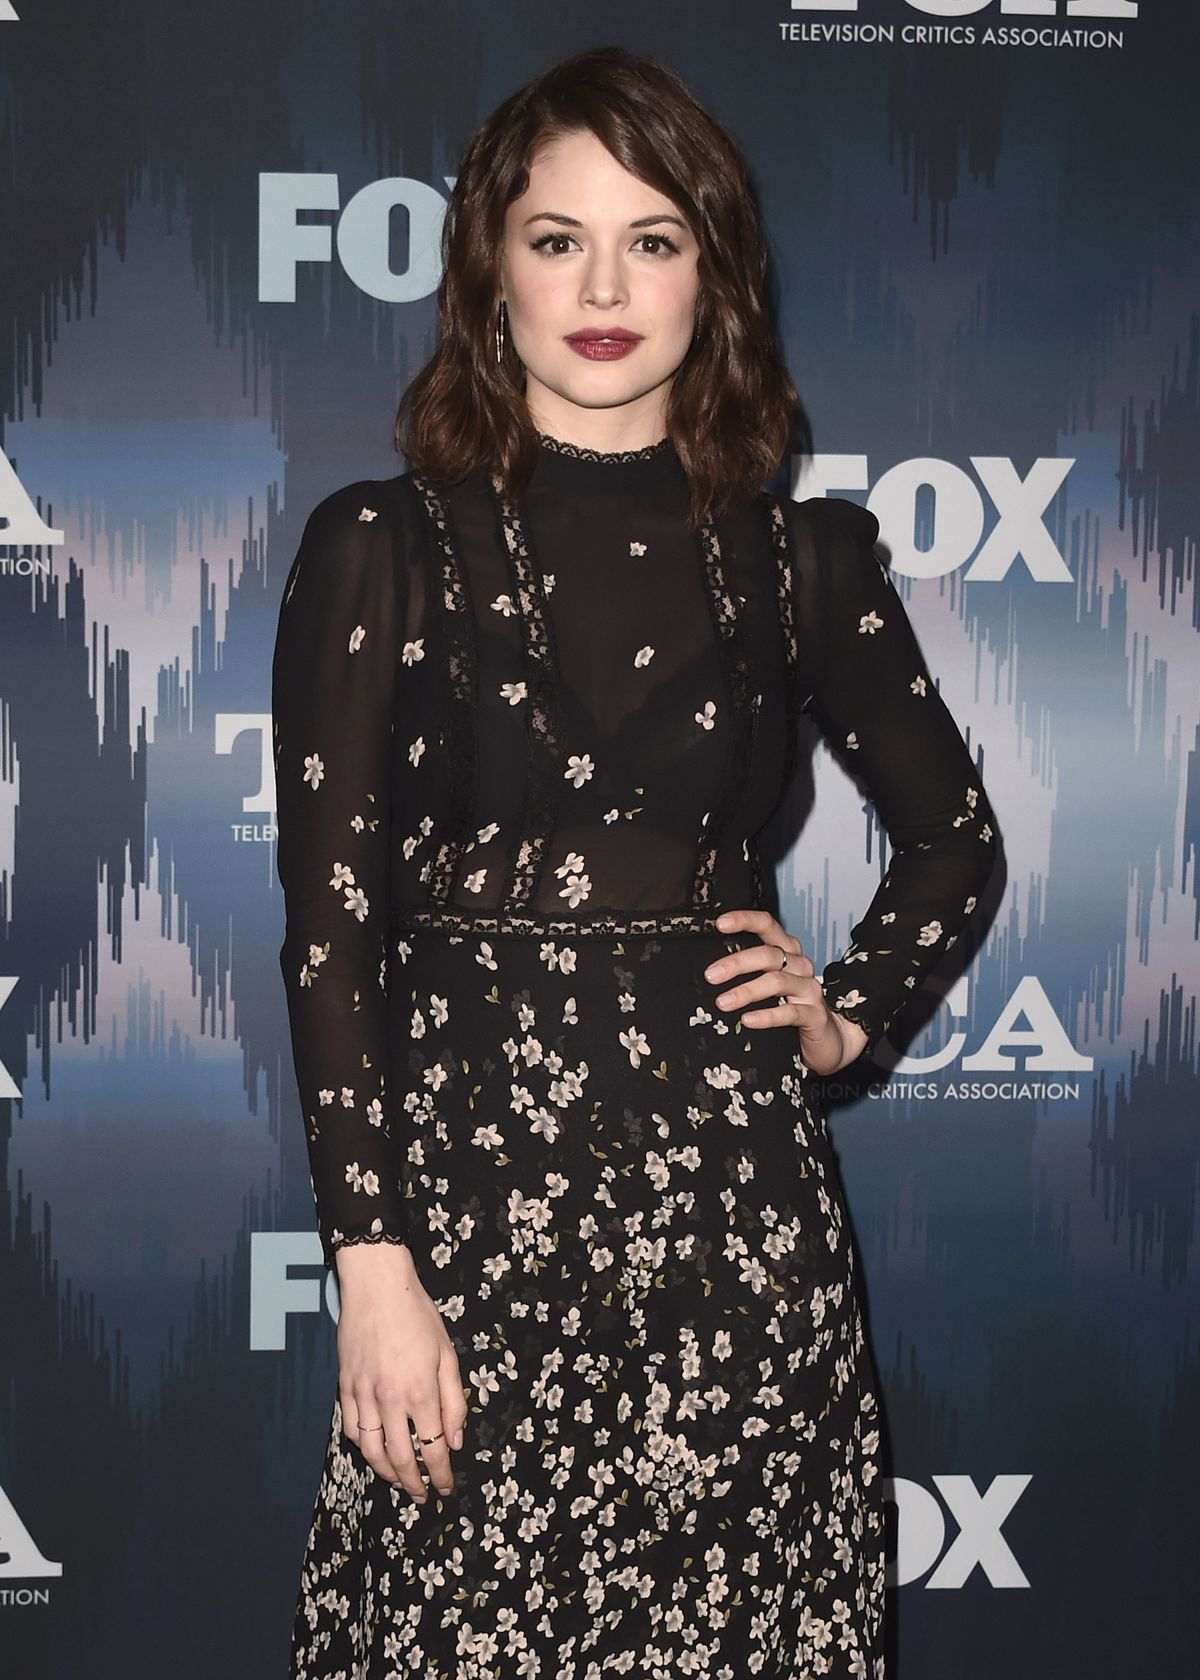 conor leslie heightconor leslie instagram, conor leslie, conor leslie chained, conor leslie height, conor leslie wiki, conor leslie bio, conor leslie hot, conor leslie other space, conor leslie nudography, conor leslie twitter, conor leslie facebook, conor leslie measurements, conor leslie revenge, conor leslie mr skin